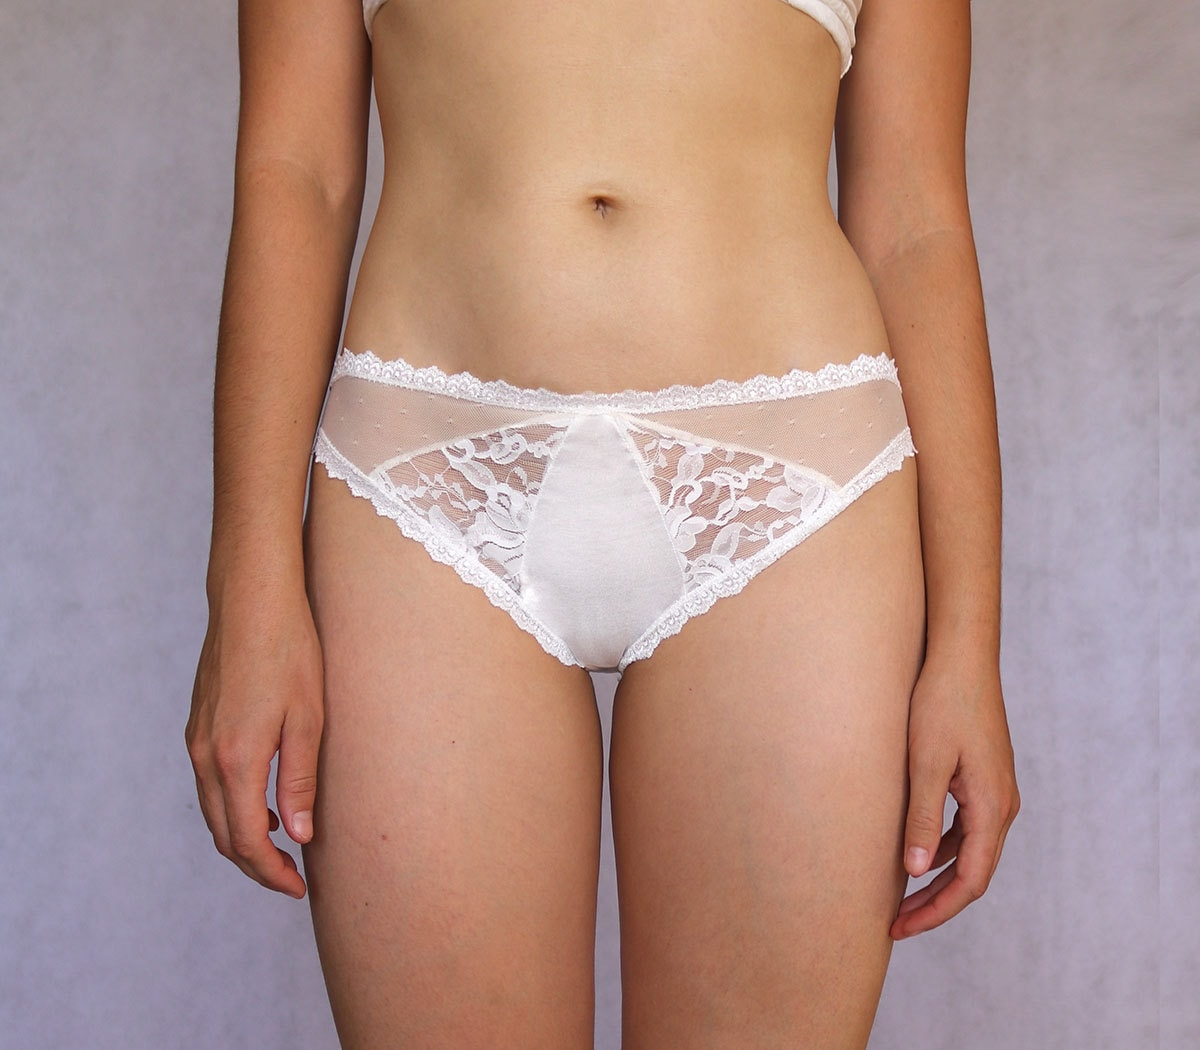 beautiful ivory bridal lace panties. multitextured off white.